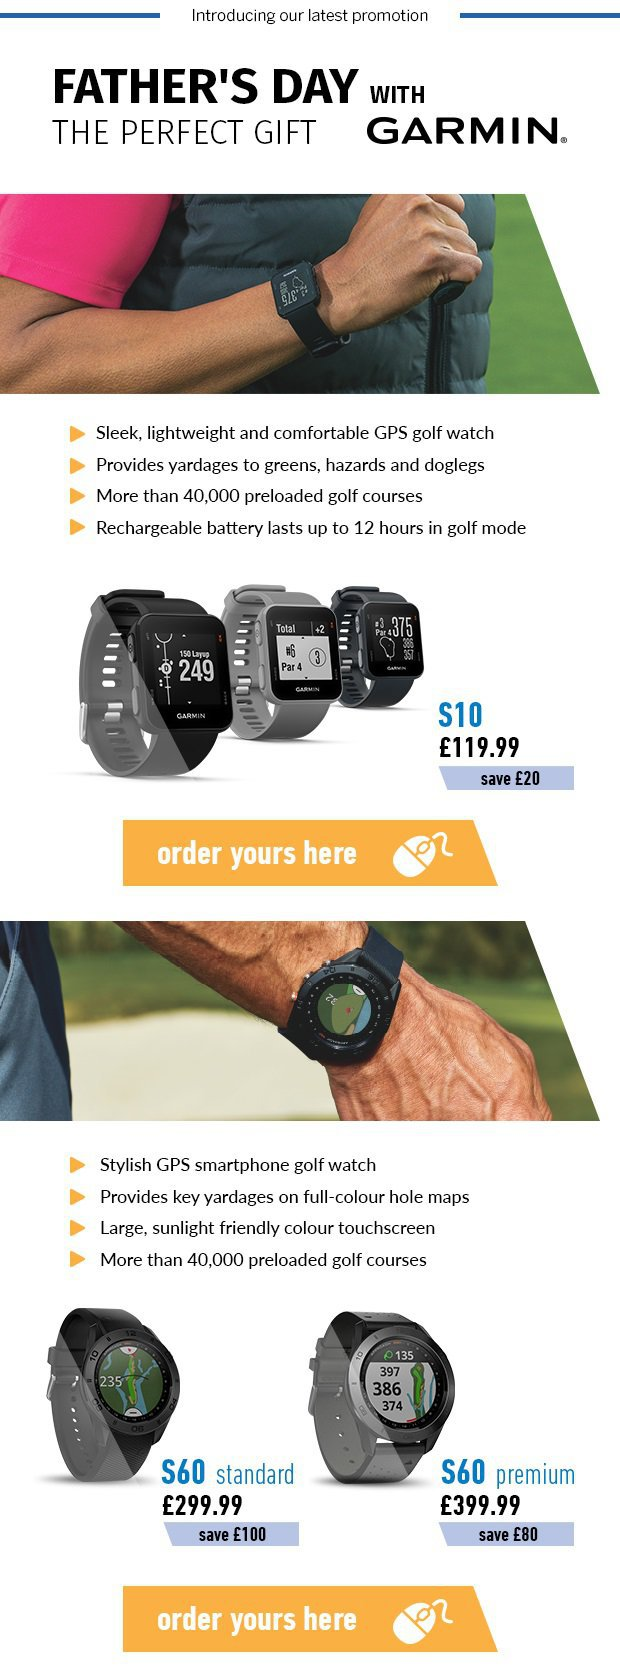 The Perfect Father's Day gift from Garmin.